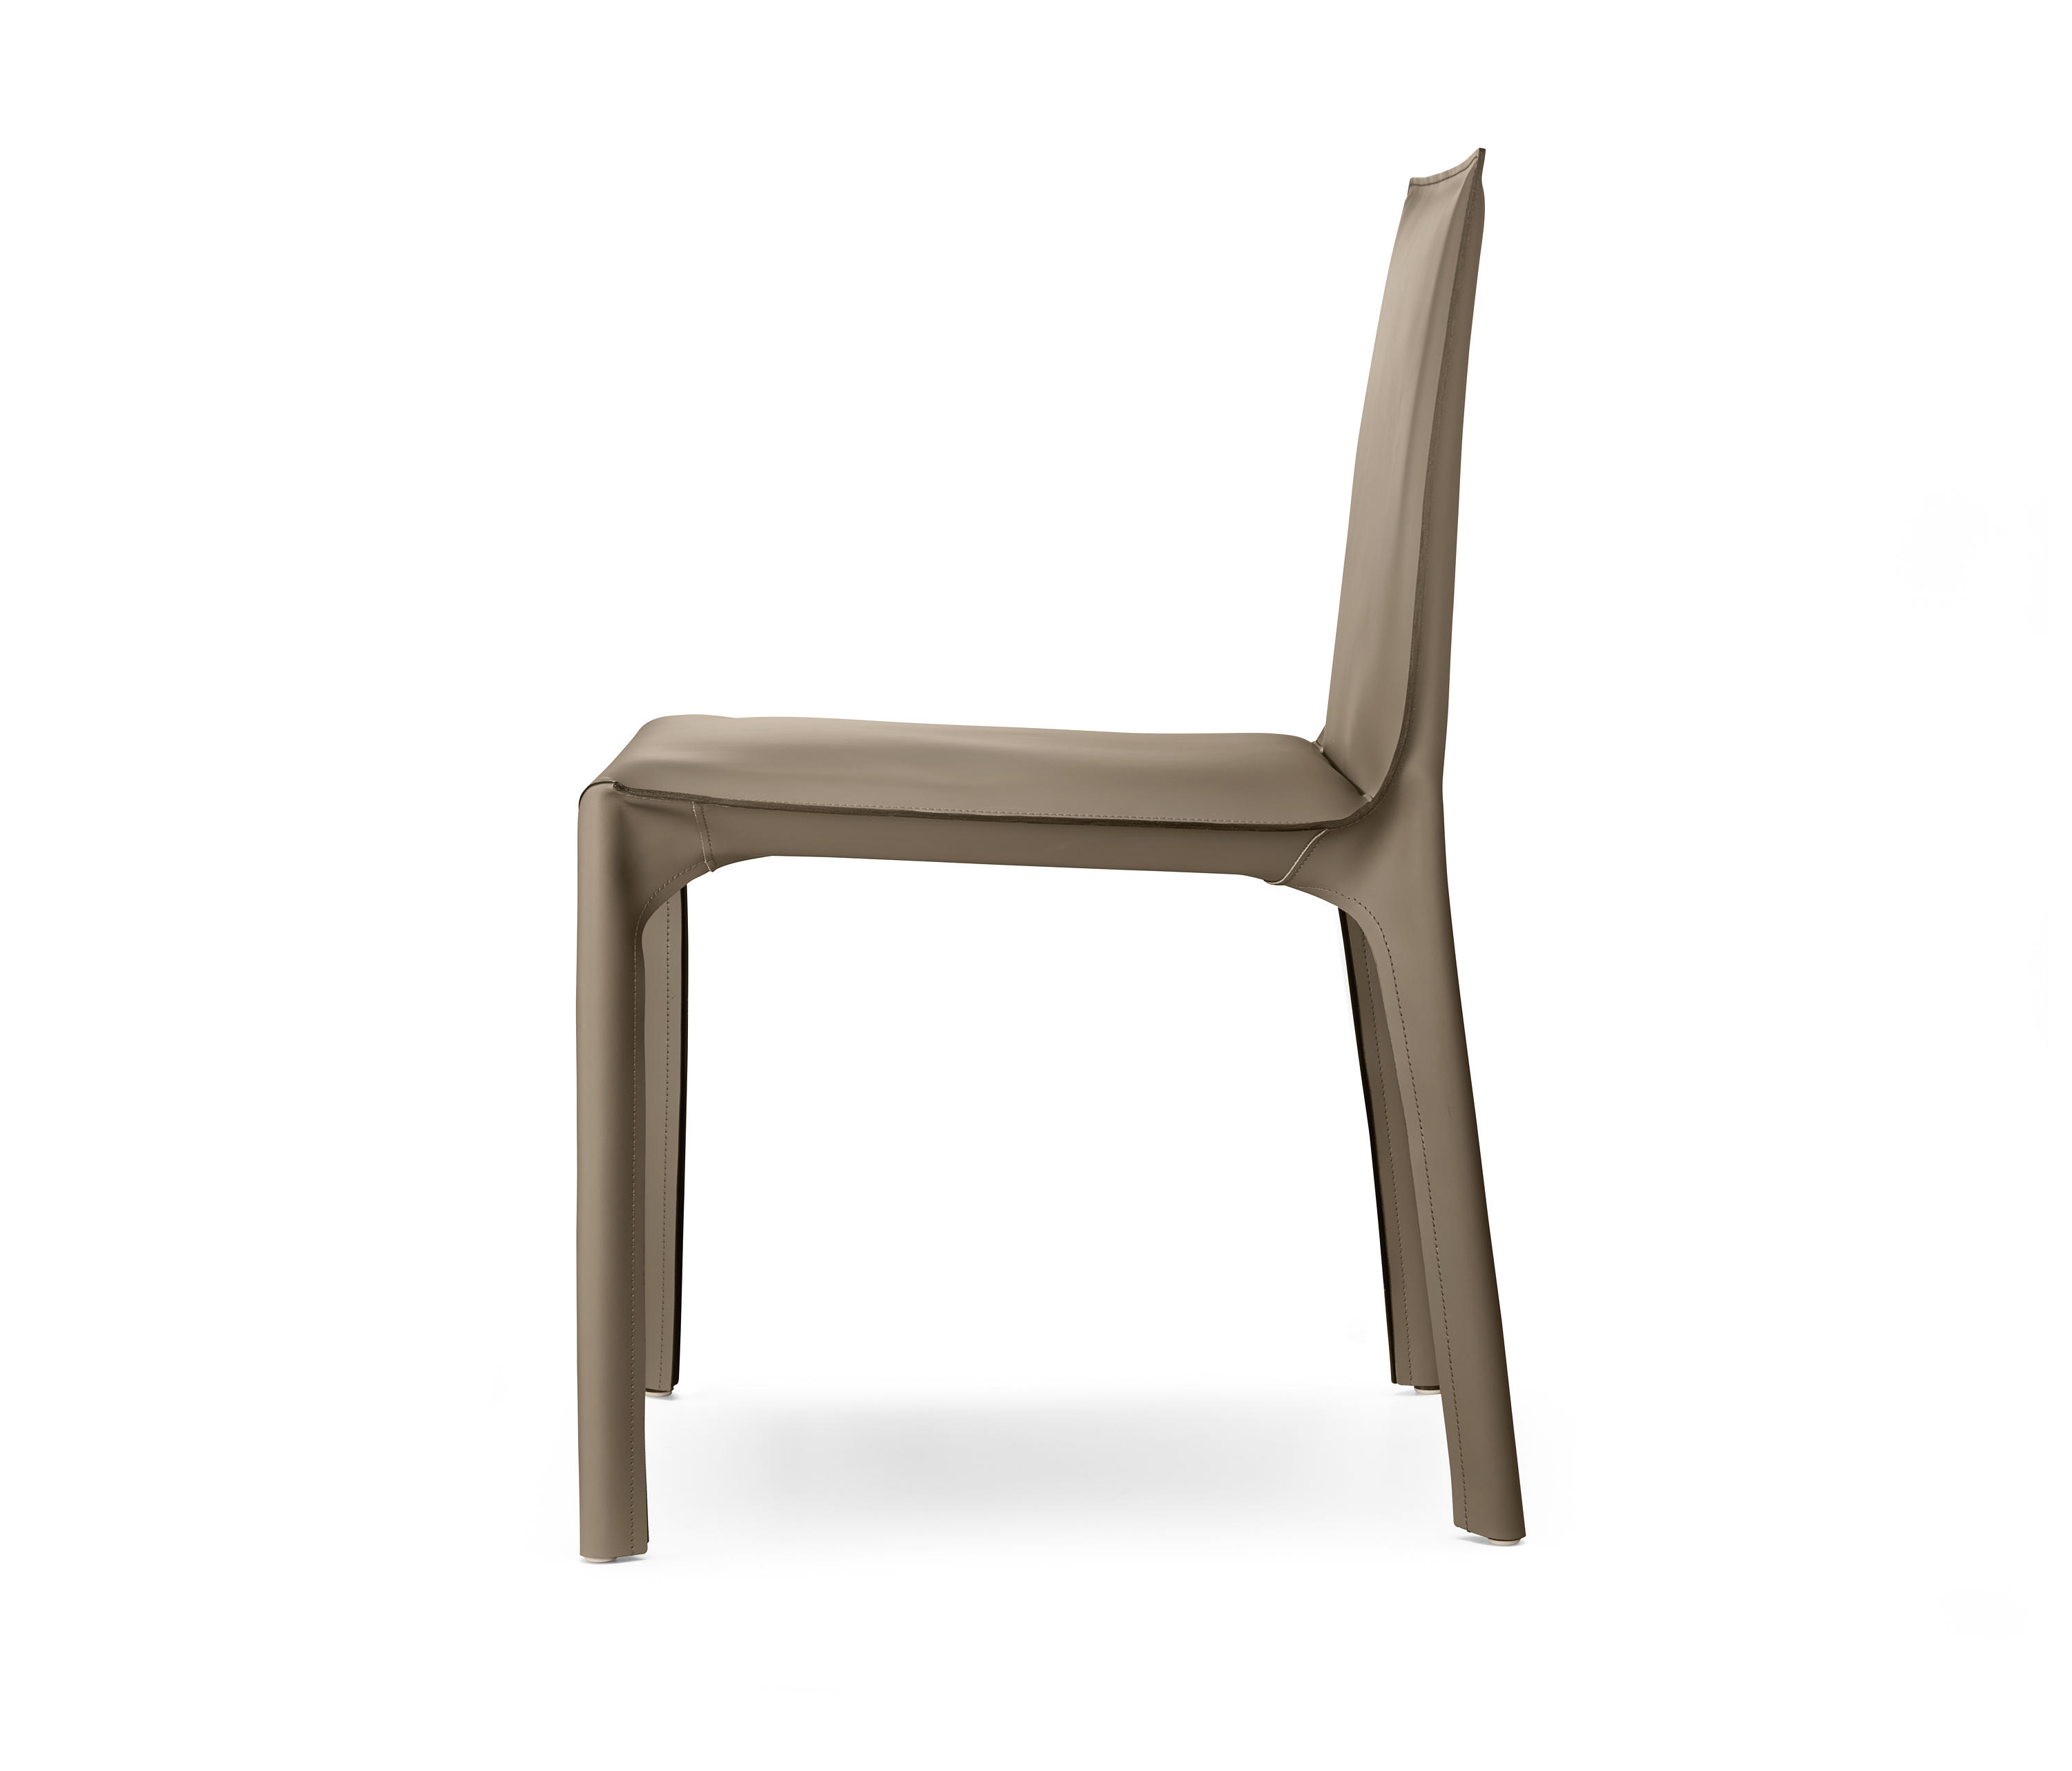 Saddle Chair Chairs From Walter Knoll Architonic